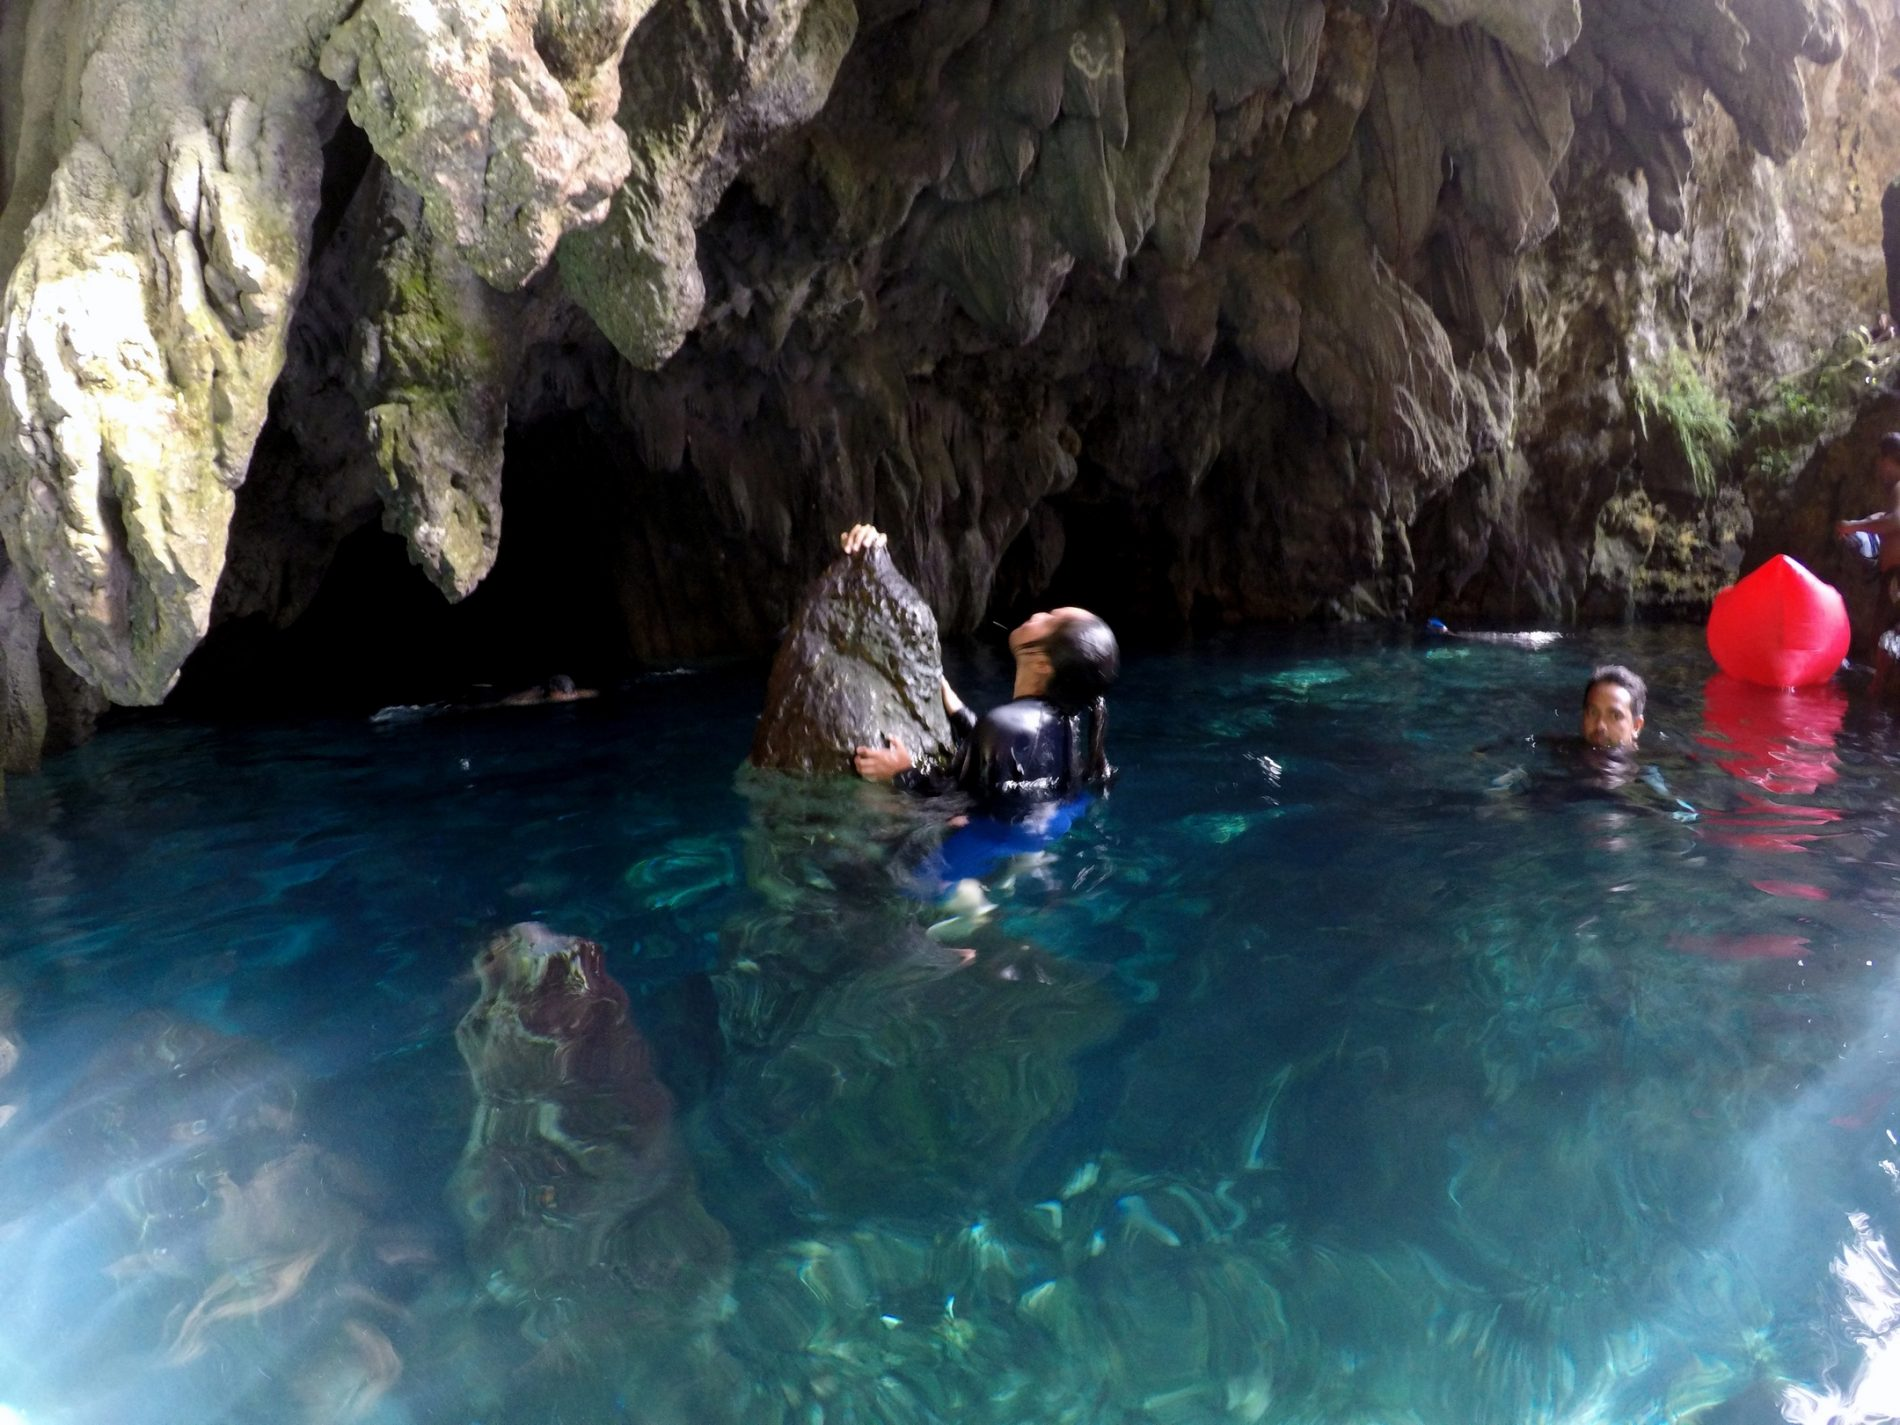 Glistening waters in the natural pool of Goa Hwang